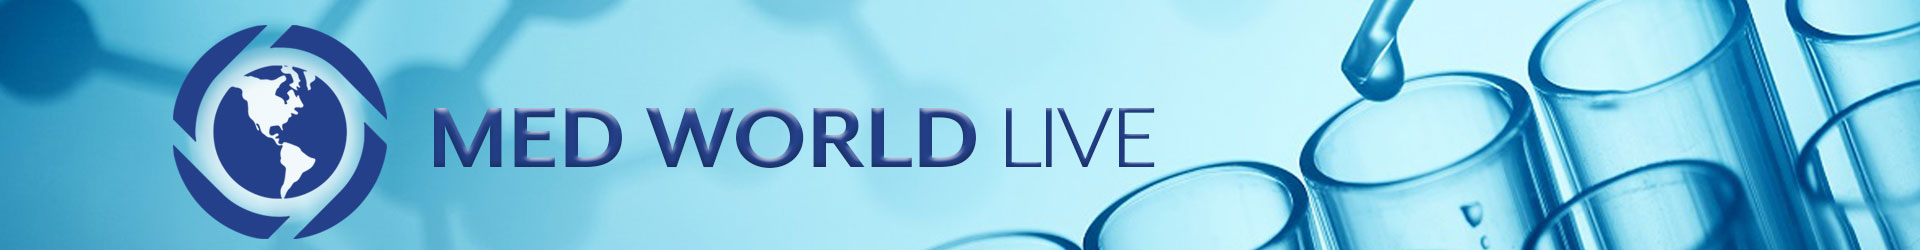 Med World Live Main